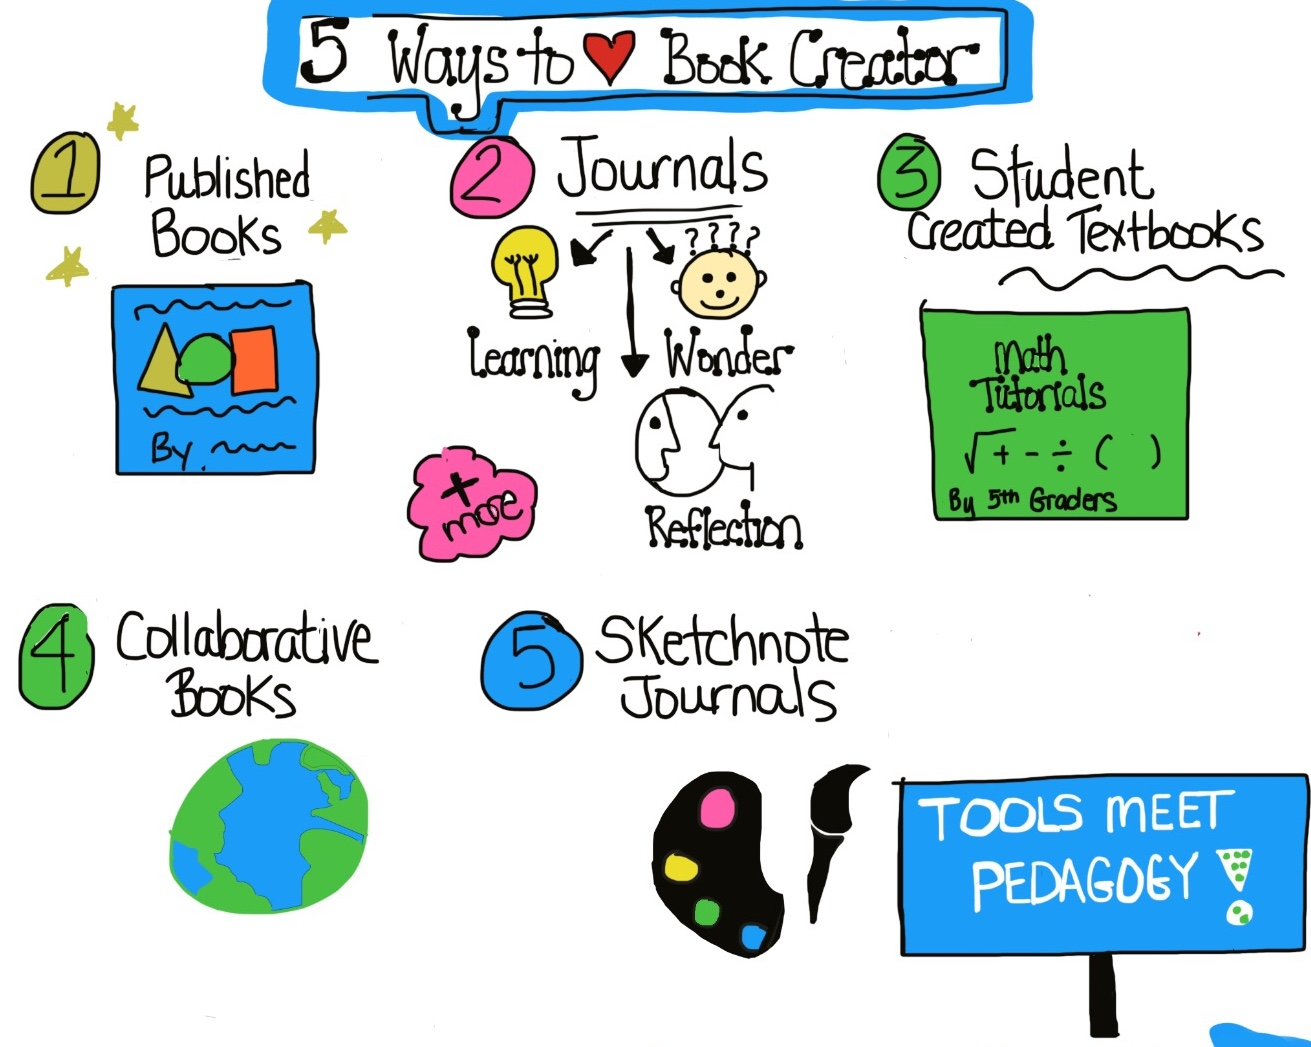 Fun Ways to Use Book Creator in the Classroom